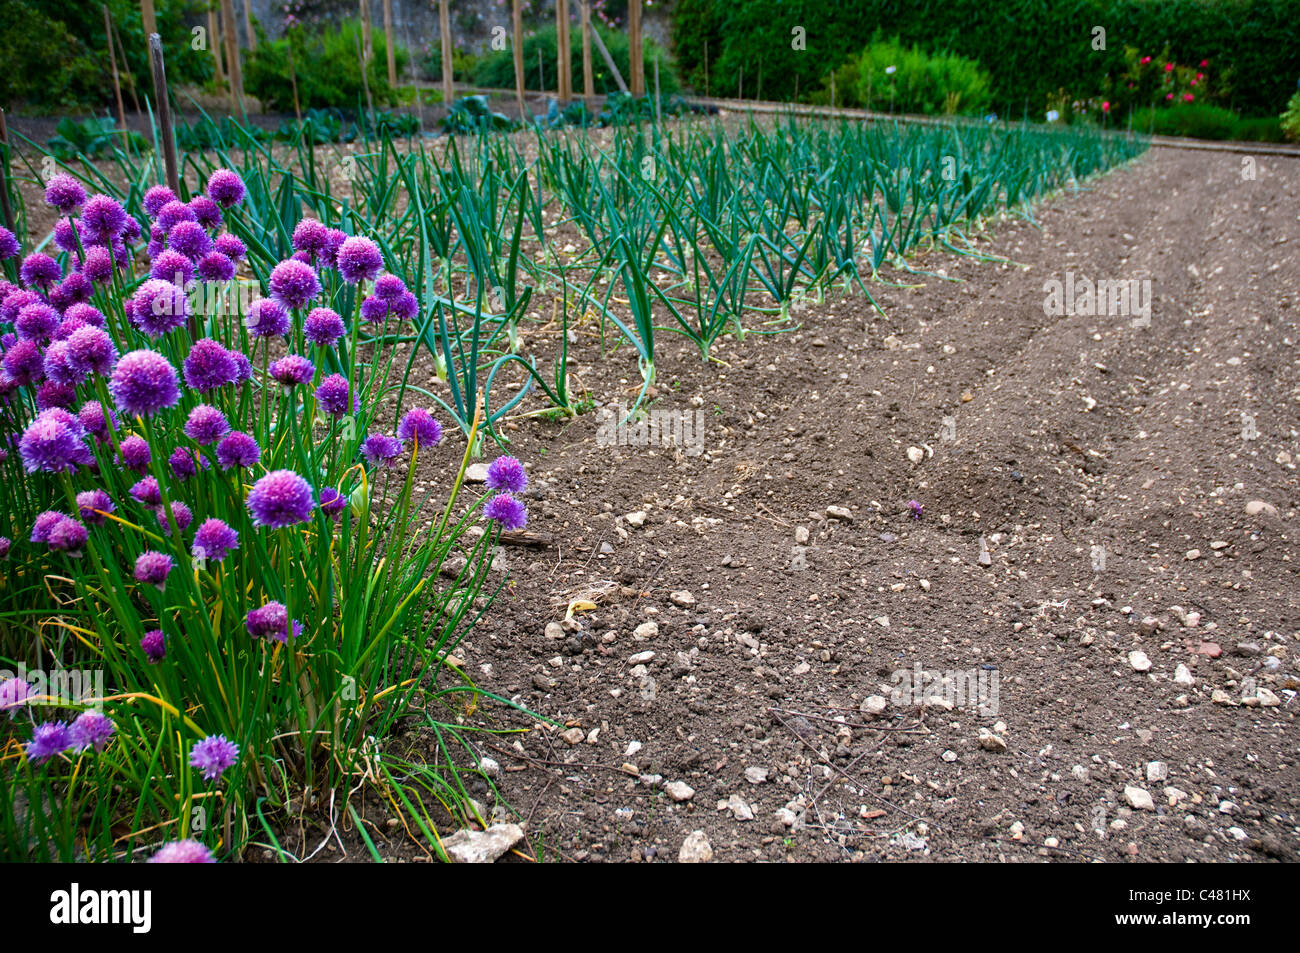 lines of onions and flowering chives being grown in a formal vegetable garden - Stock Image